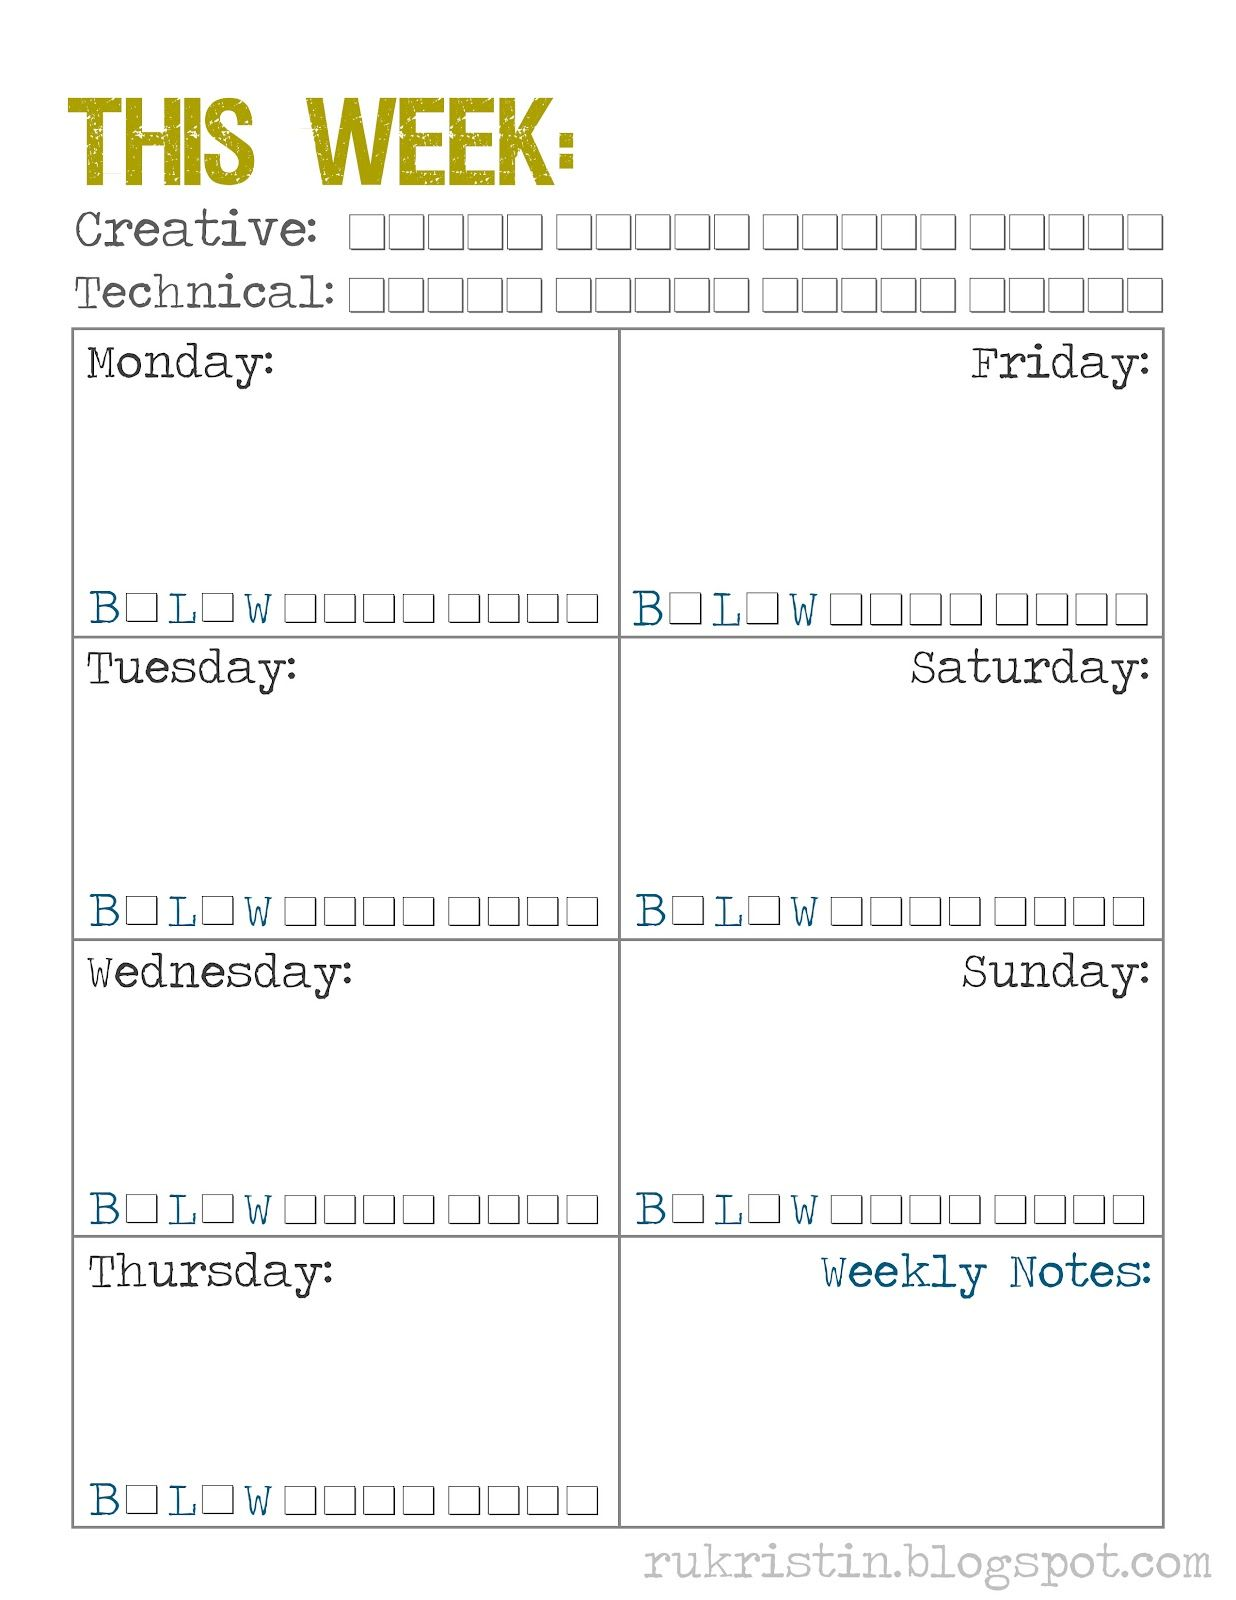 Free Printable Weekly Calendar Template With Great Ideas